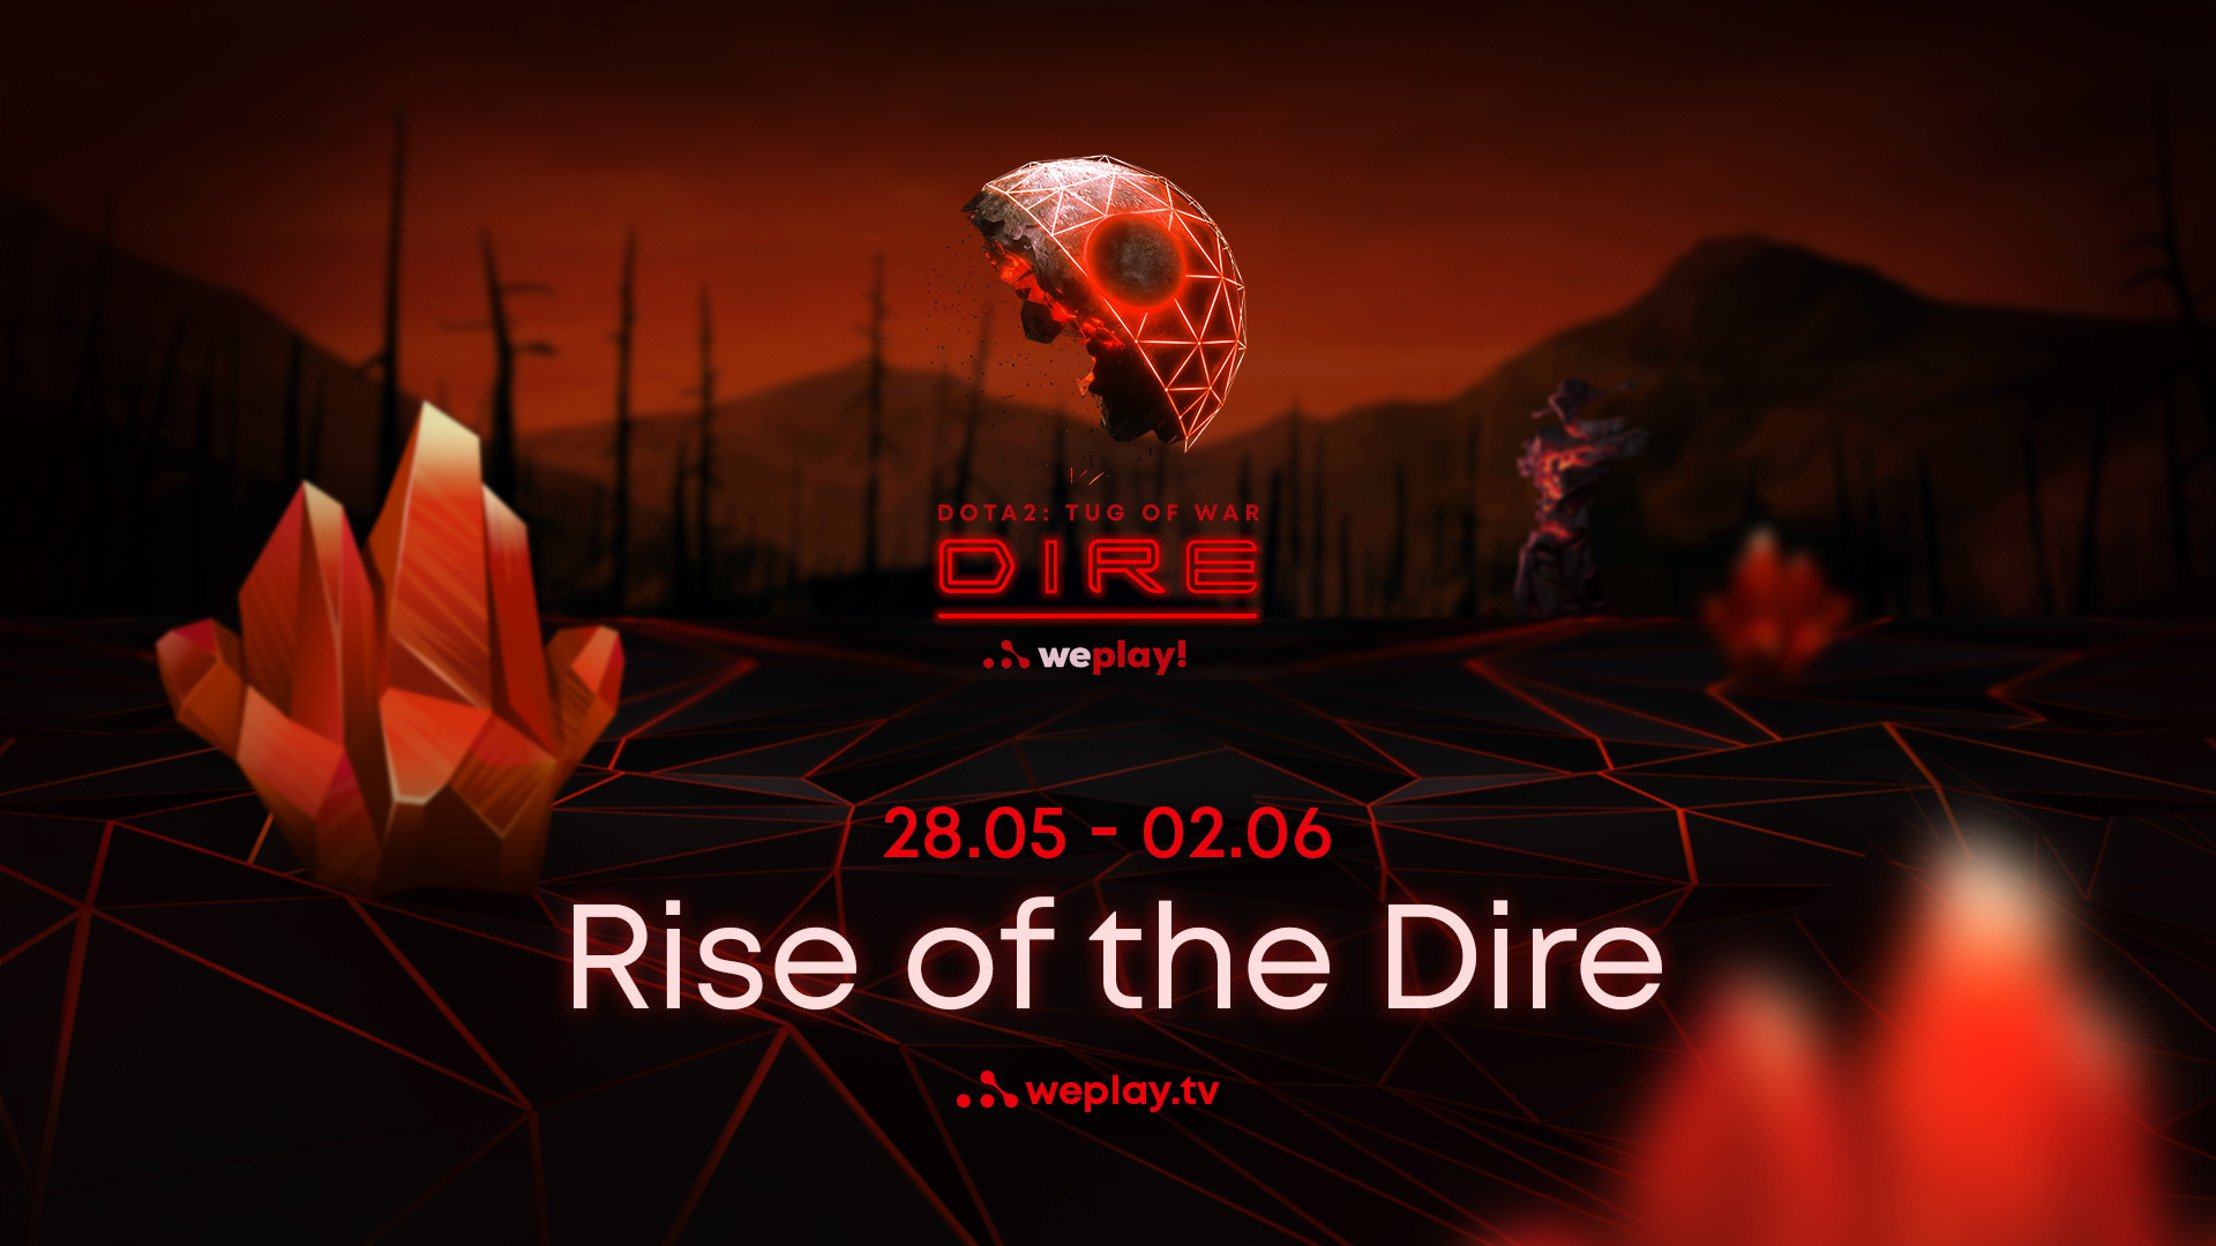 WePlay! announces an updated list of WePlay! Tug of War: Dire participants